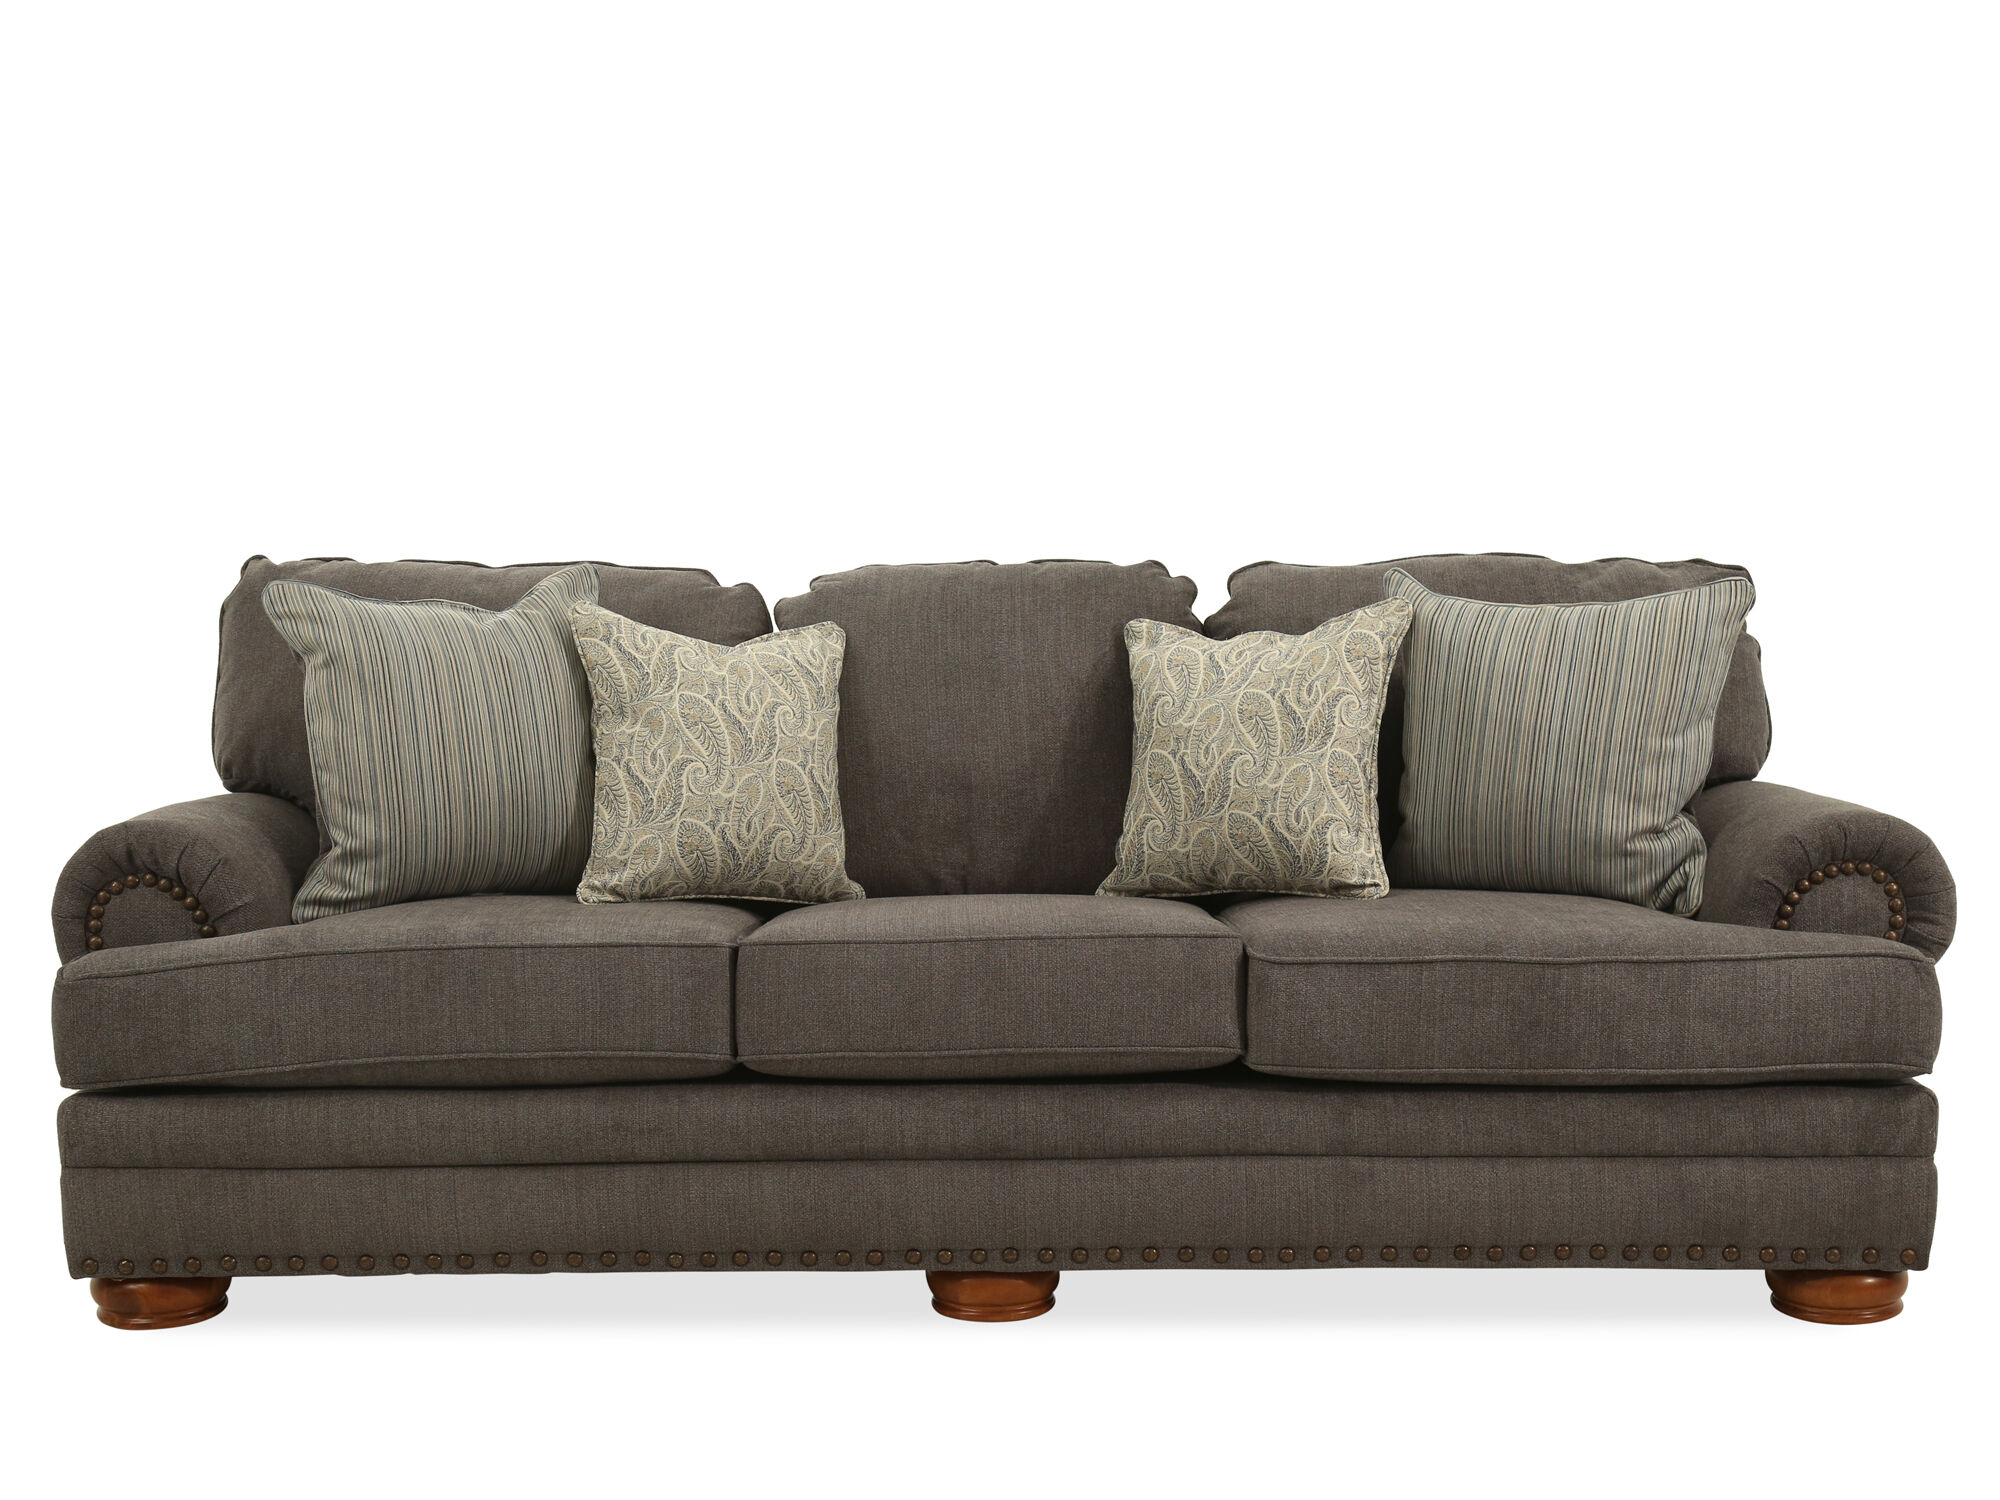 grey carleton nailhead sofa 90 inch long table contemporary accented 101 quot in gray mathis